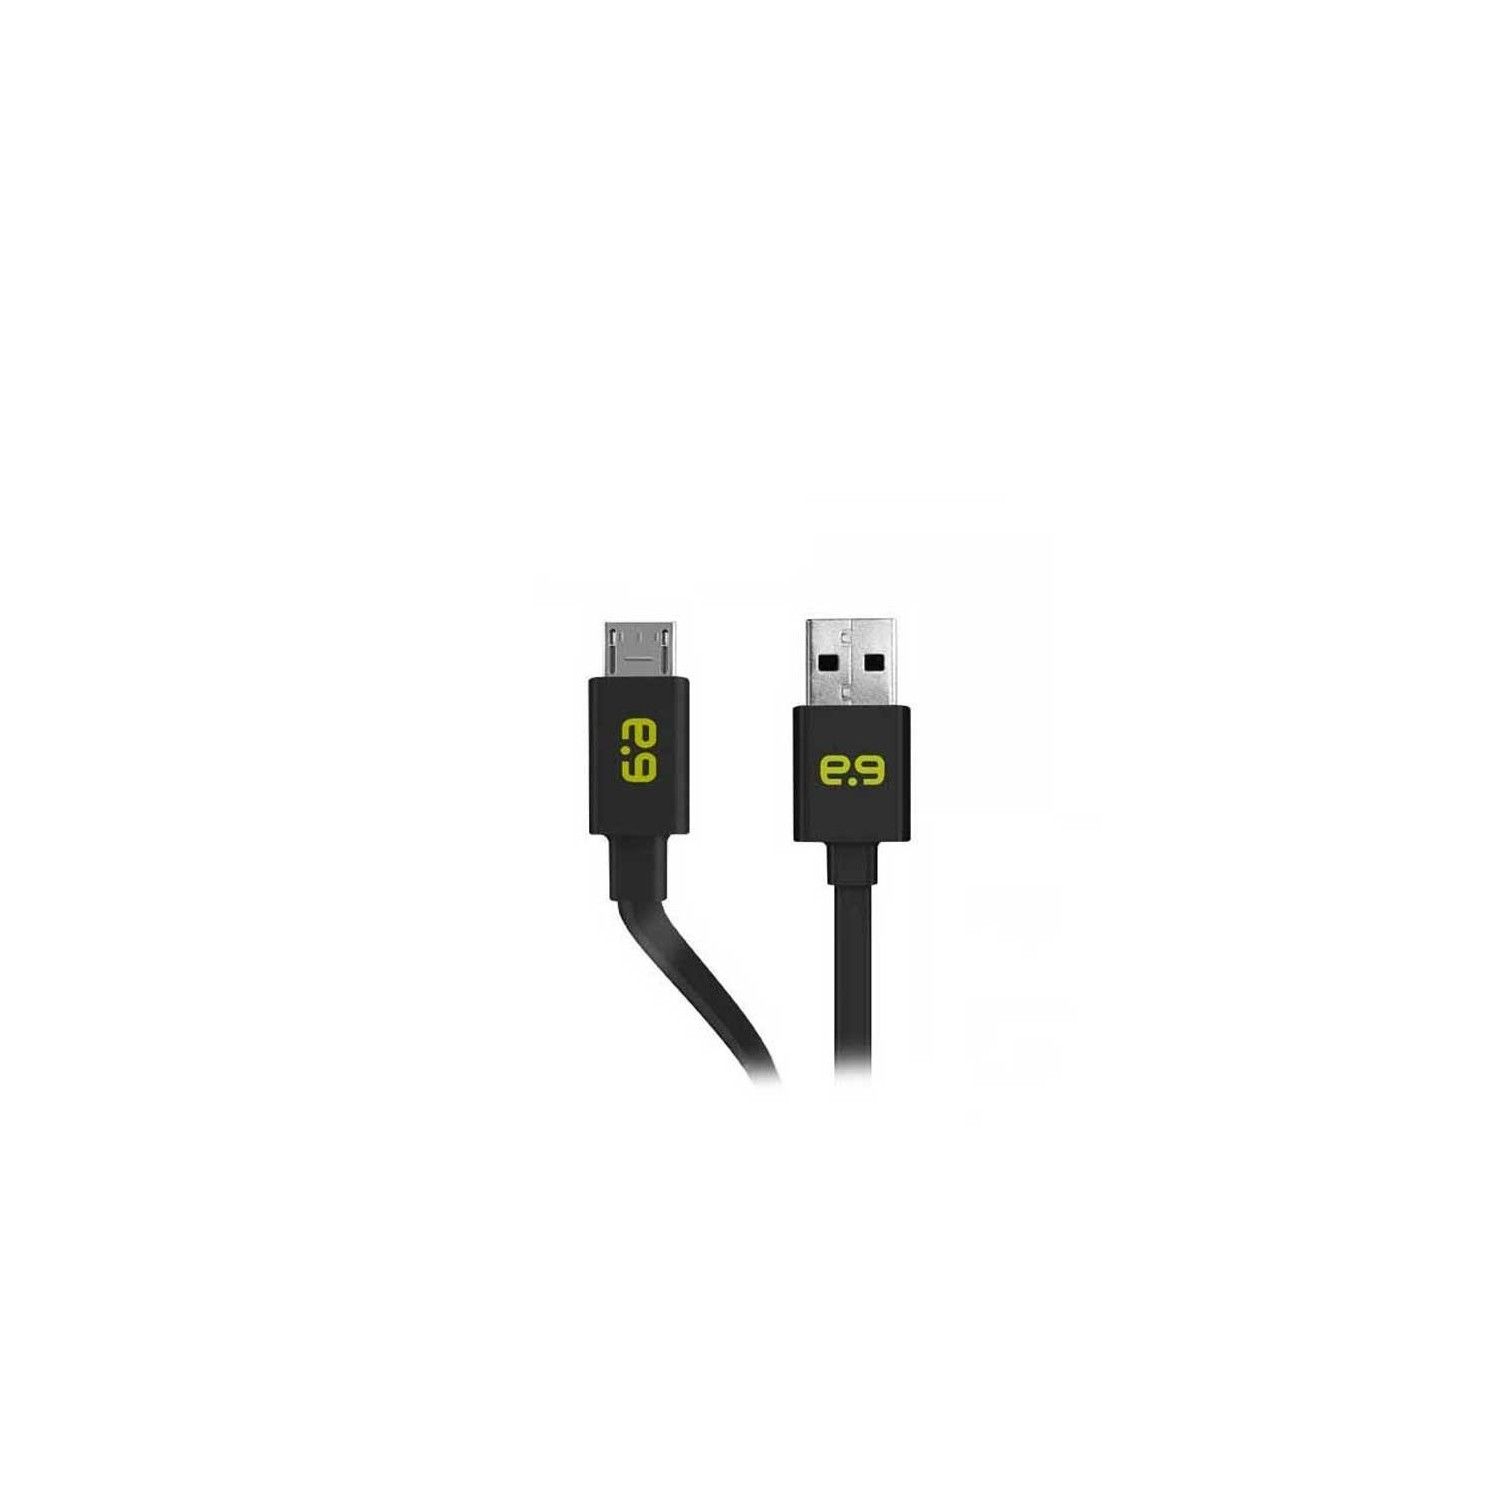 SYNC CABLE - Puregear Micro USB Flat Universal Cable Black